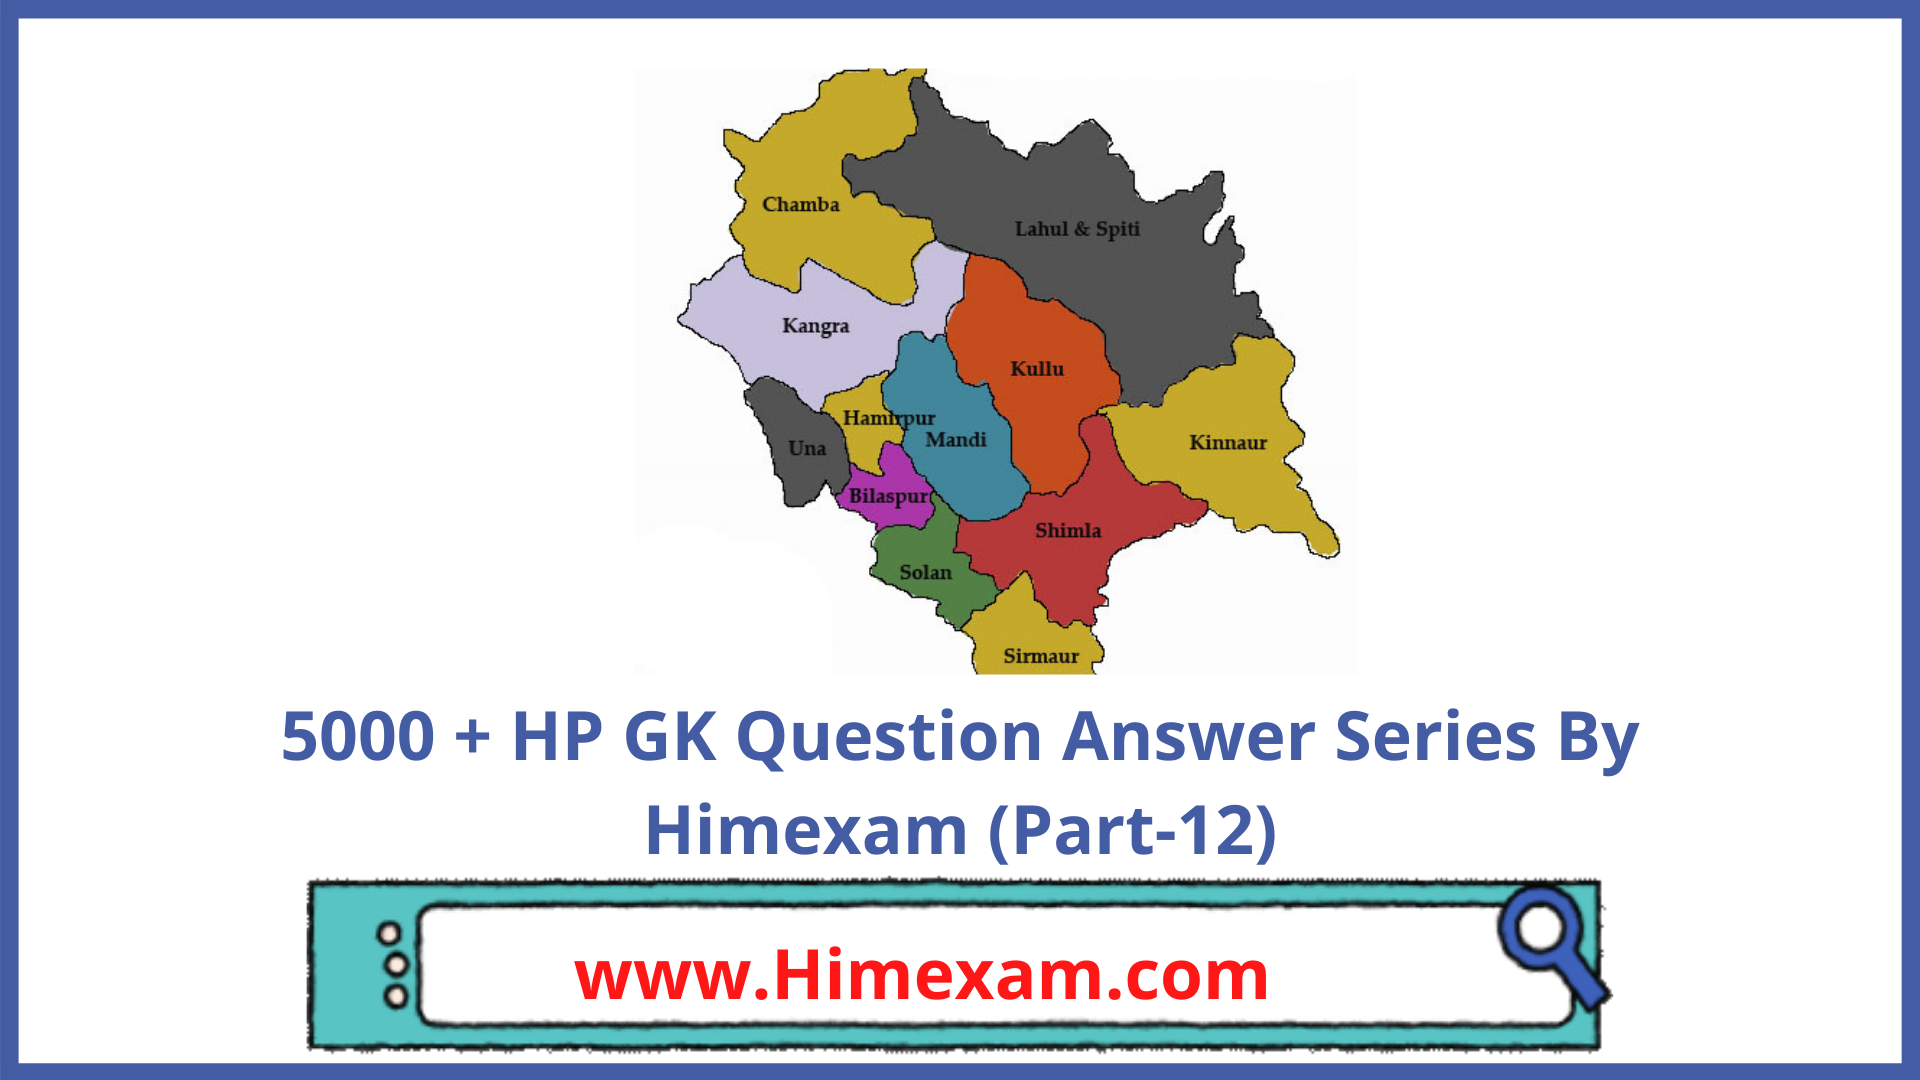 5000 + HP GK Question Answer Series By Himexam (Part-12)